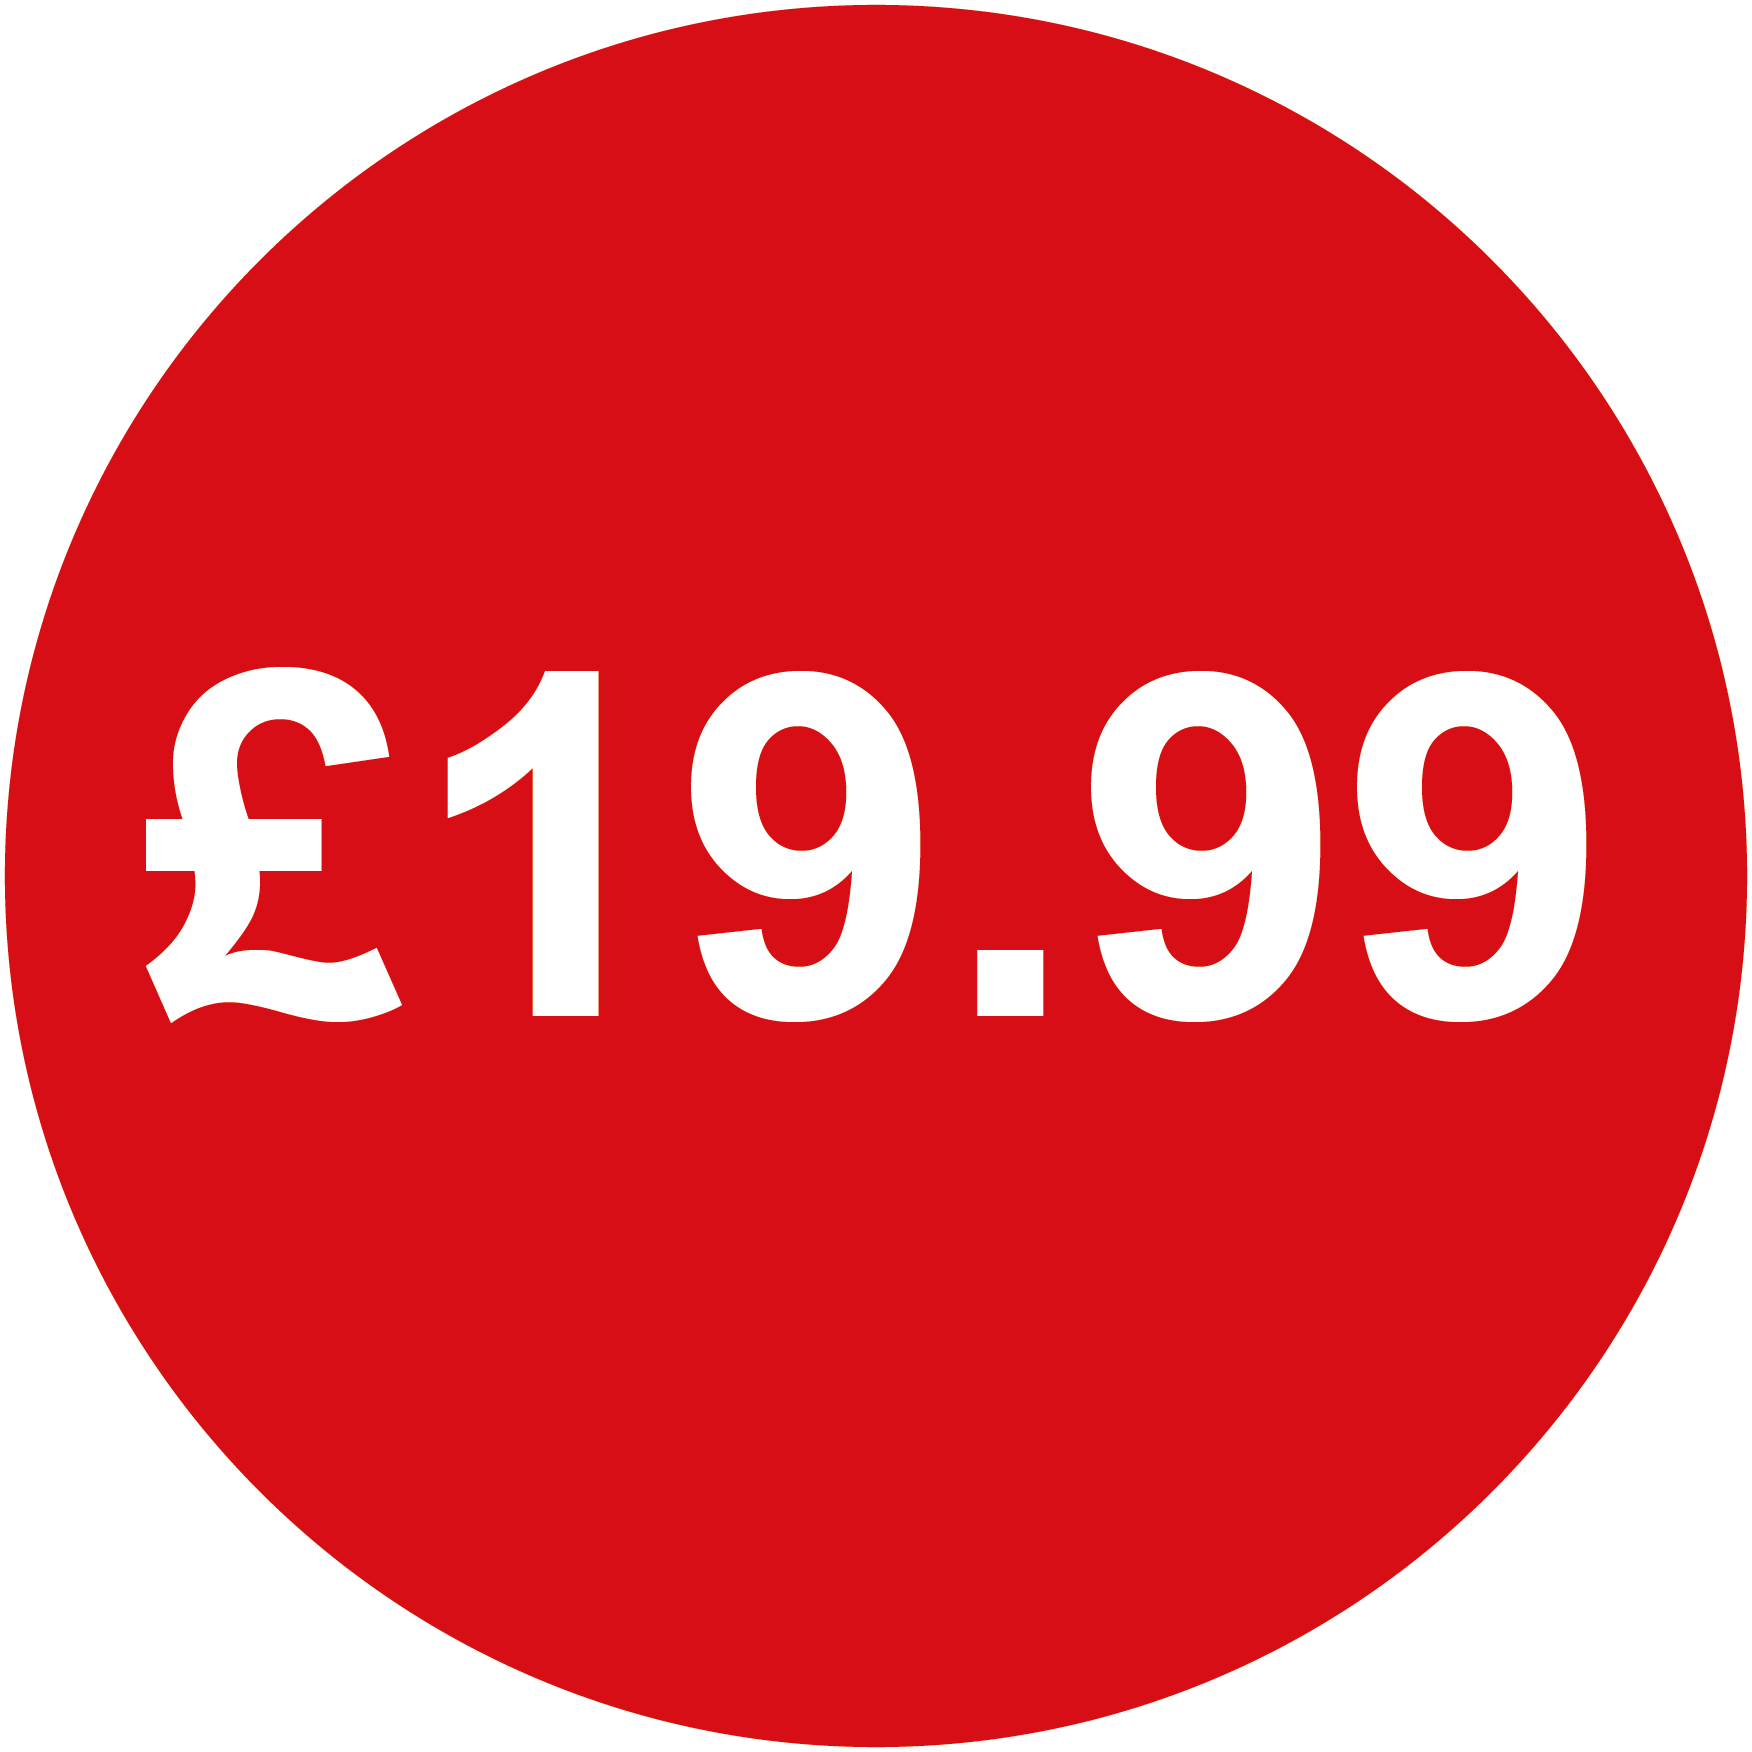 Red /£10 From 99p to /£10 Pack of 200 Red 20mm Price Stickers//Sticky Labels